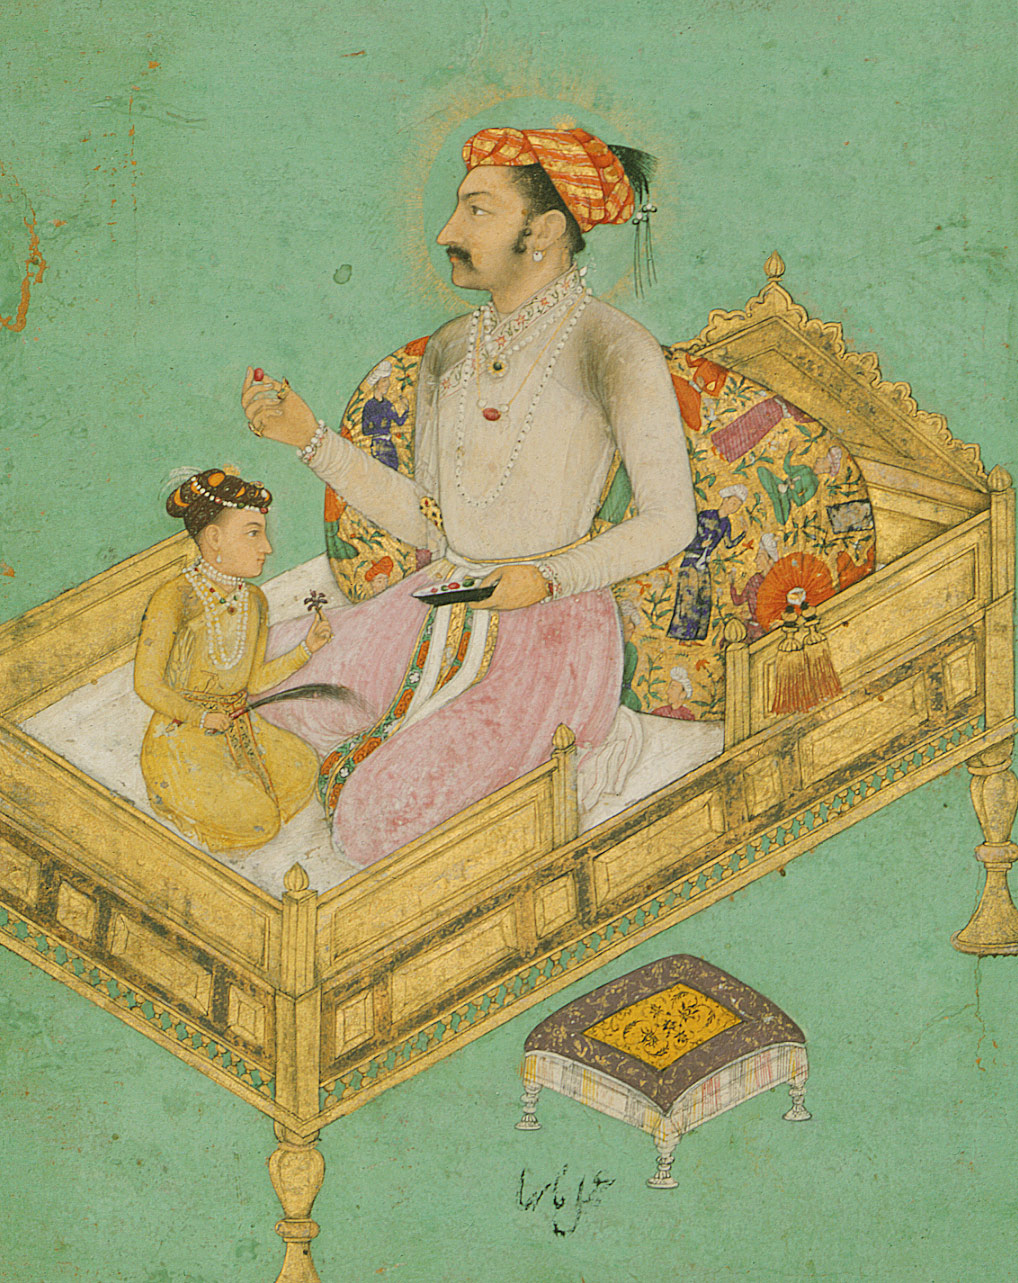 Prince Khurram (Shah Jahan) with His Son Dara Shikoh: